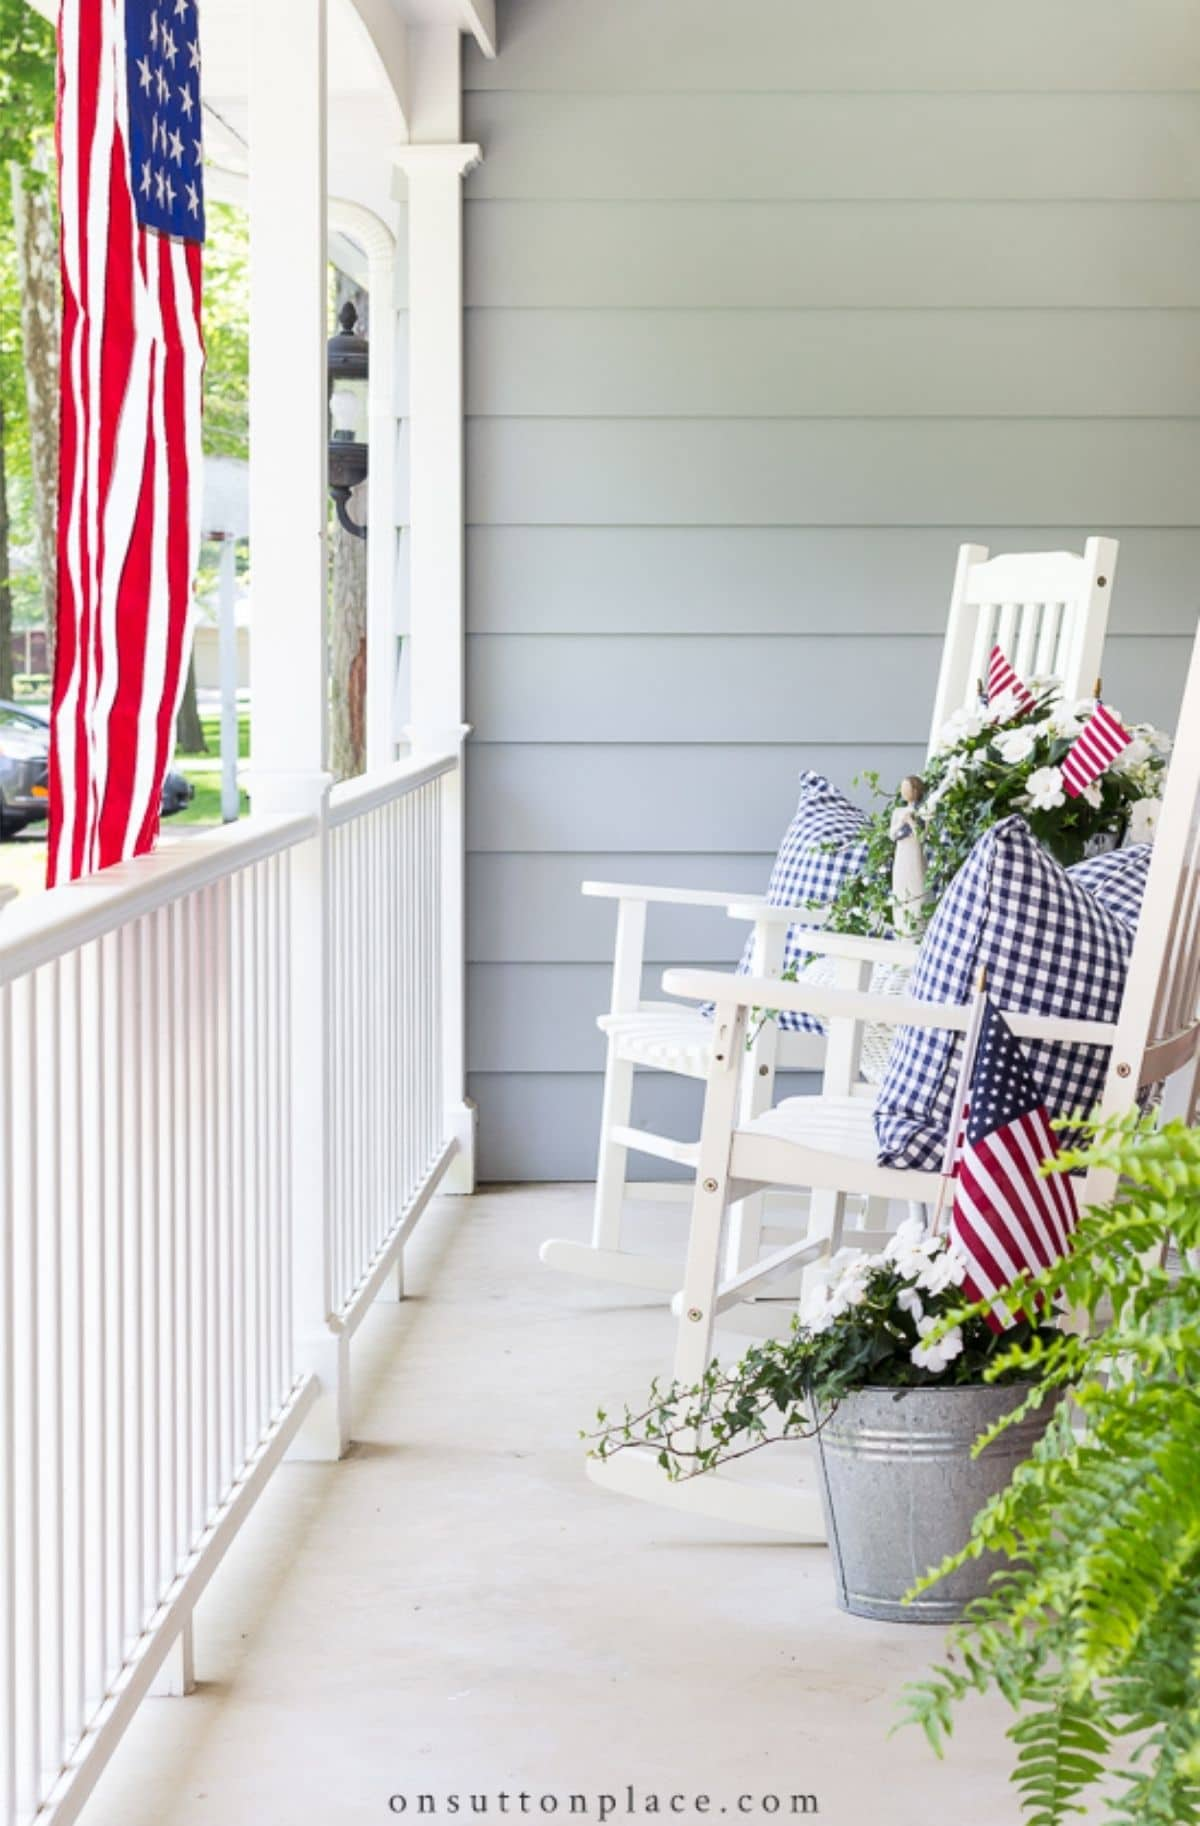 porch with white rocking chairs, decorative pillows, and hanging american flag